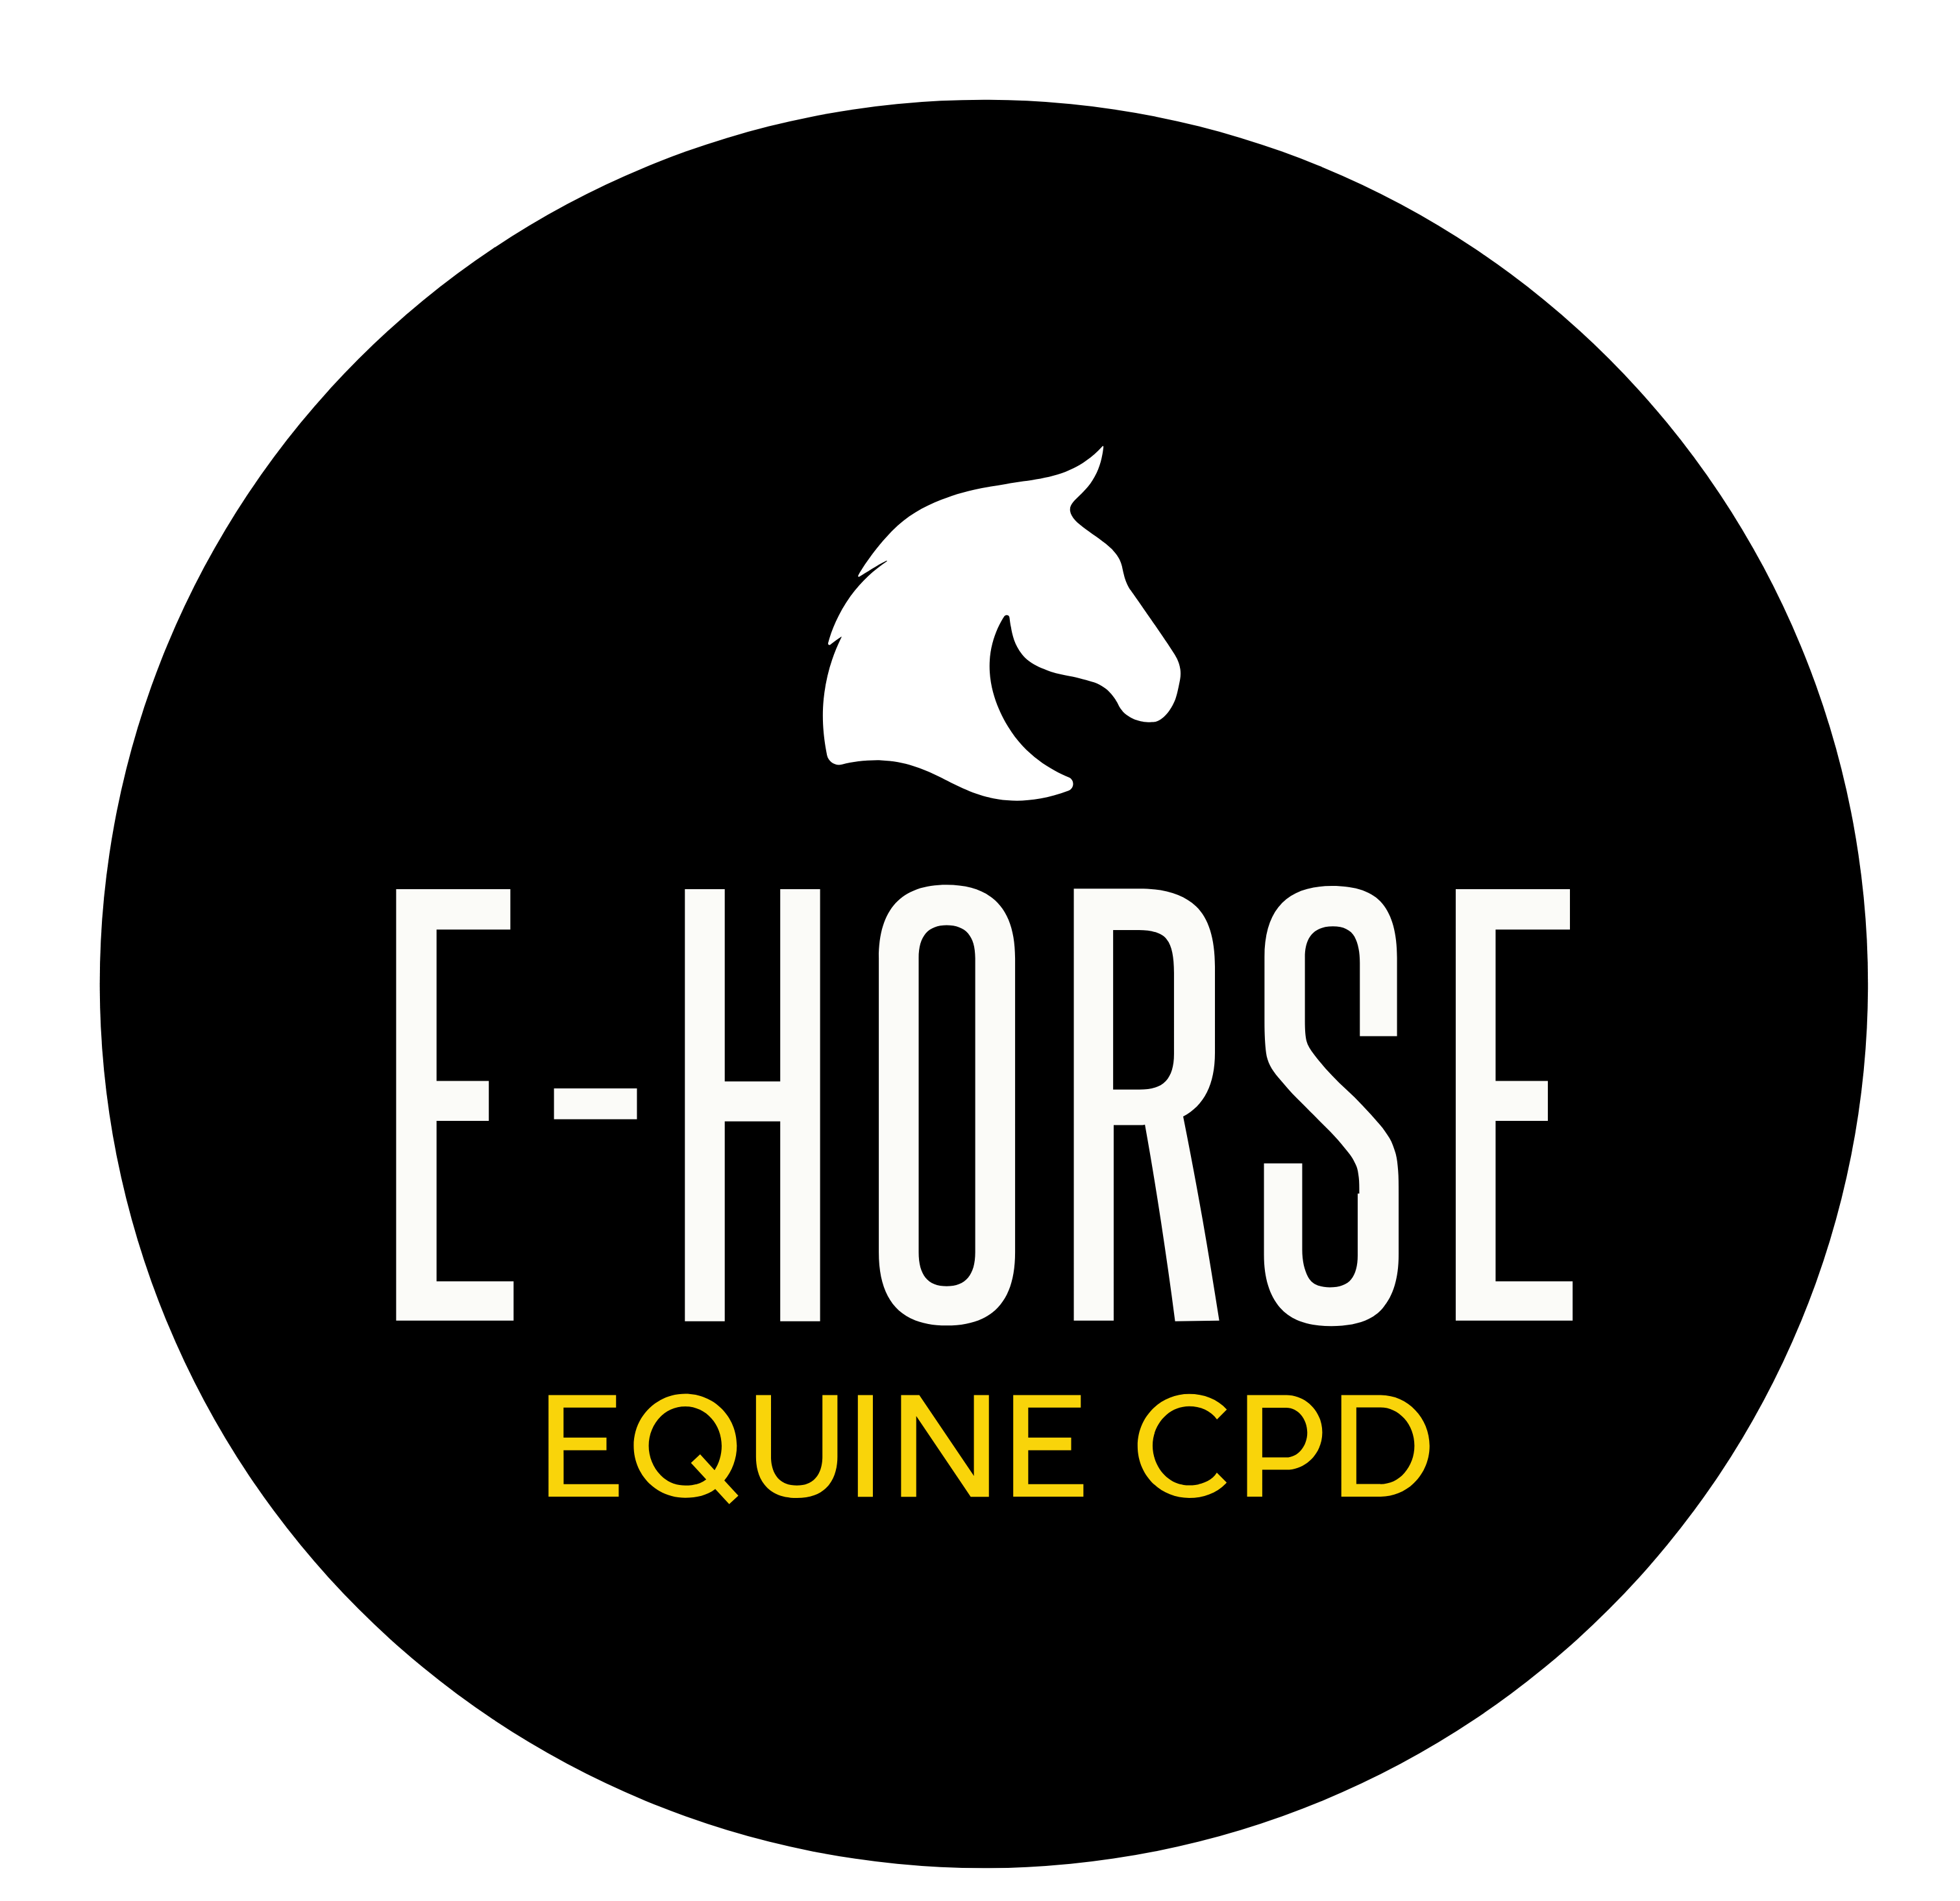 E-horse (Equine) CPD Limited logo